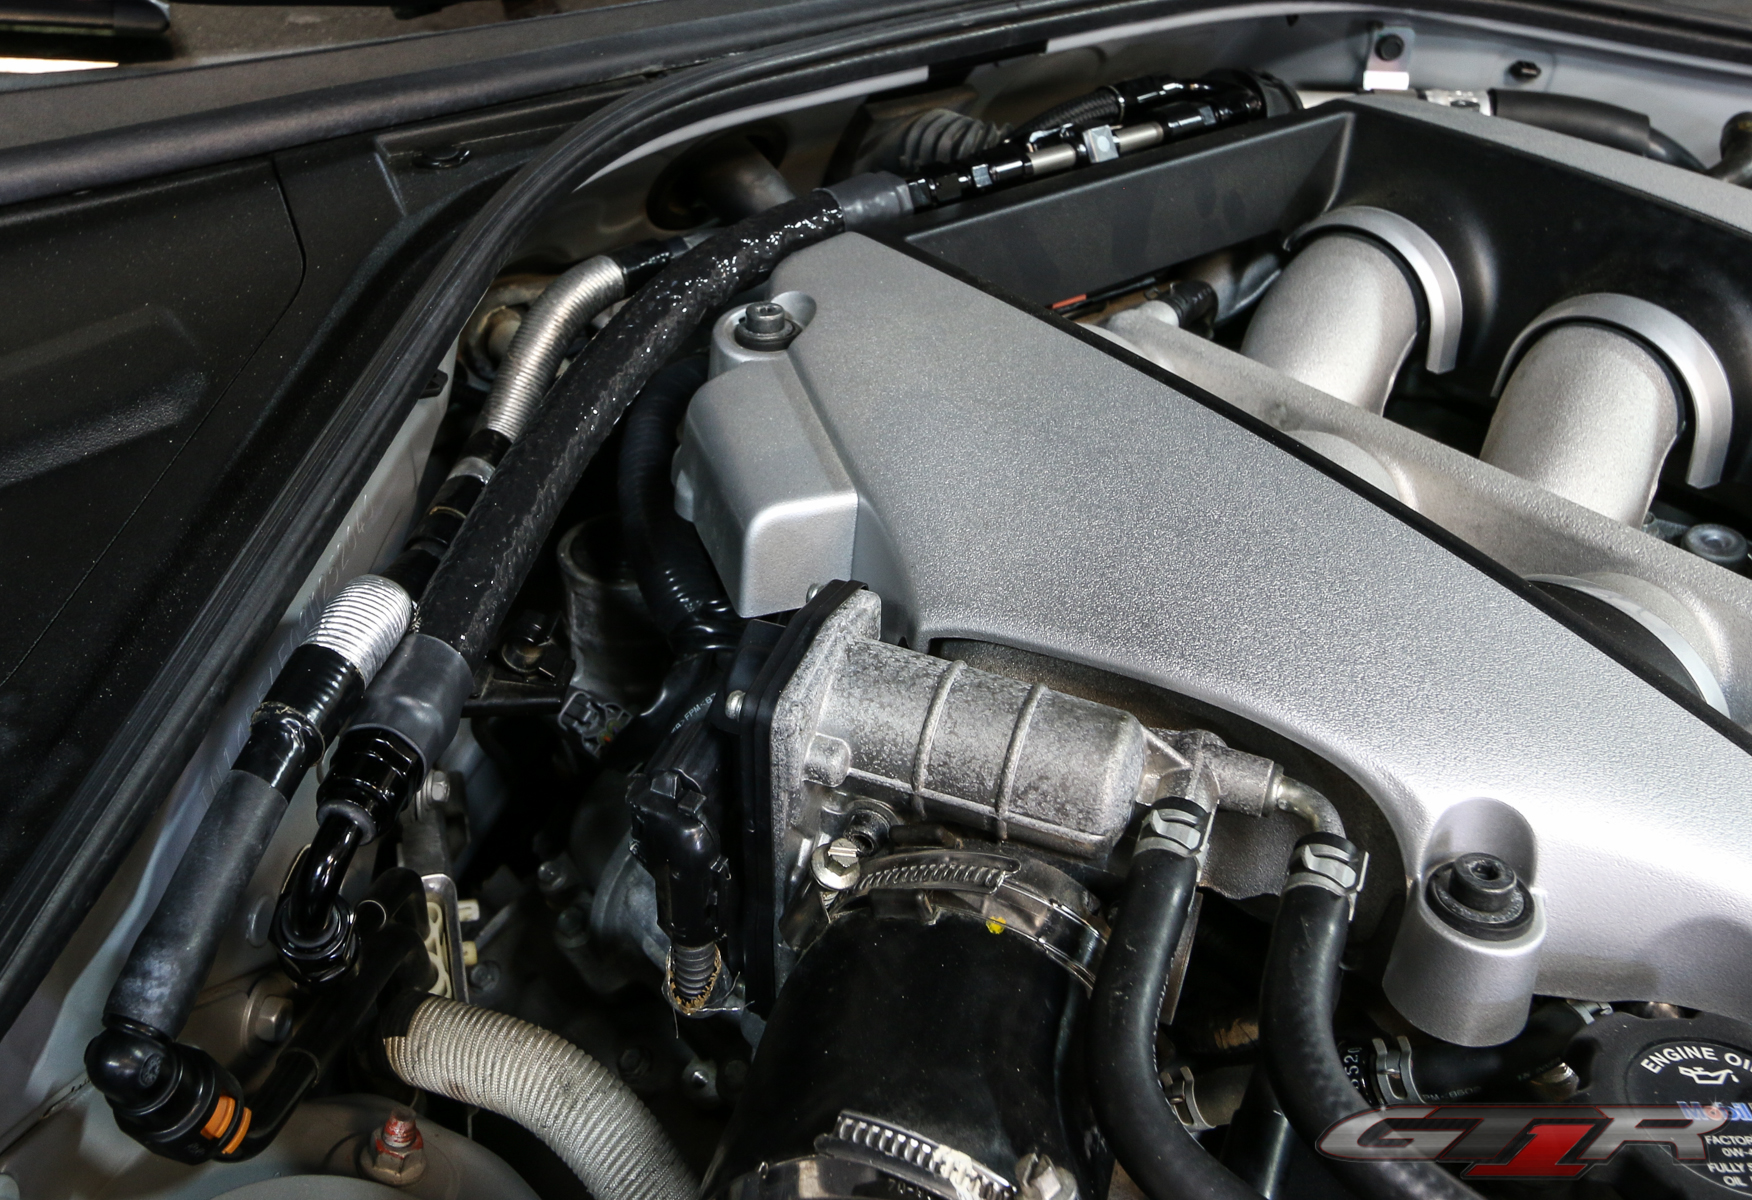 Gt1r Flex Fuel Kit T1 Race Support Gtr Engine Diagram For Use With A Cobb Accessport Has Provided Very Detailed Overview Concerning The Wiring And Tuning Please Refer To Following Post